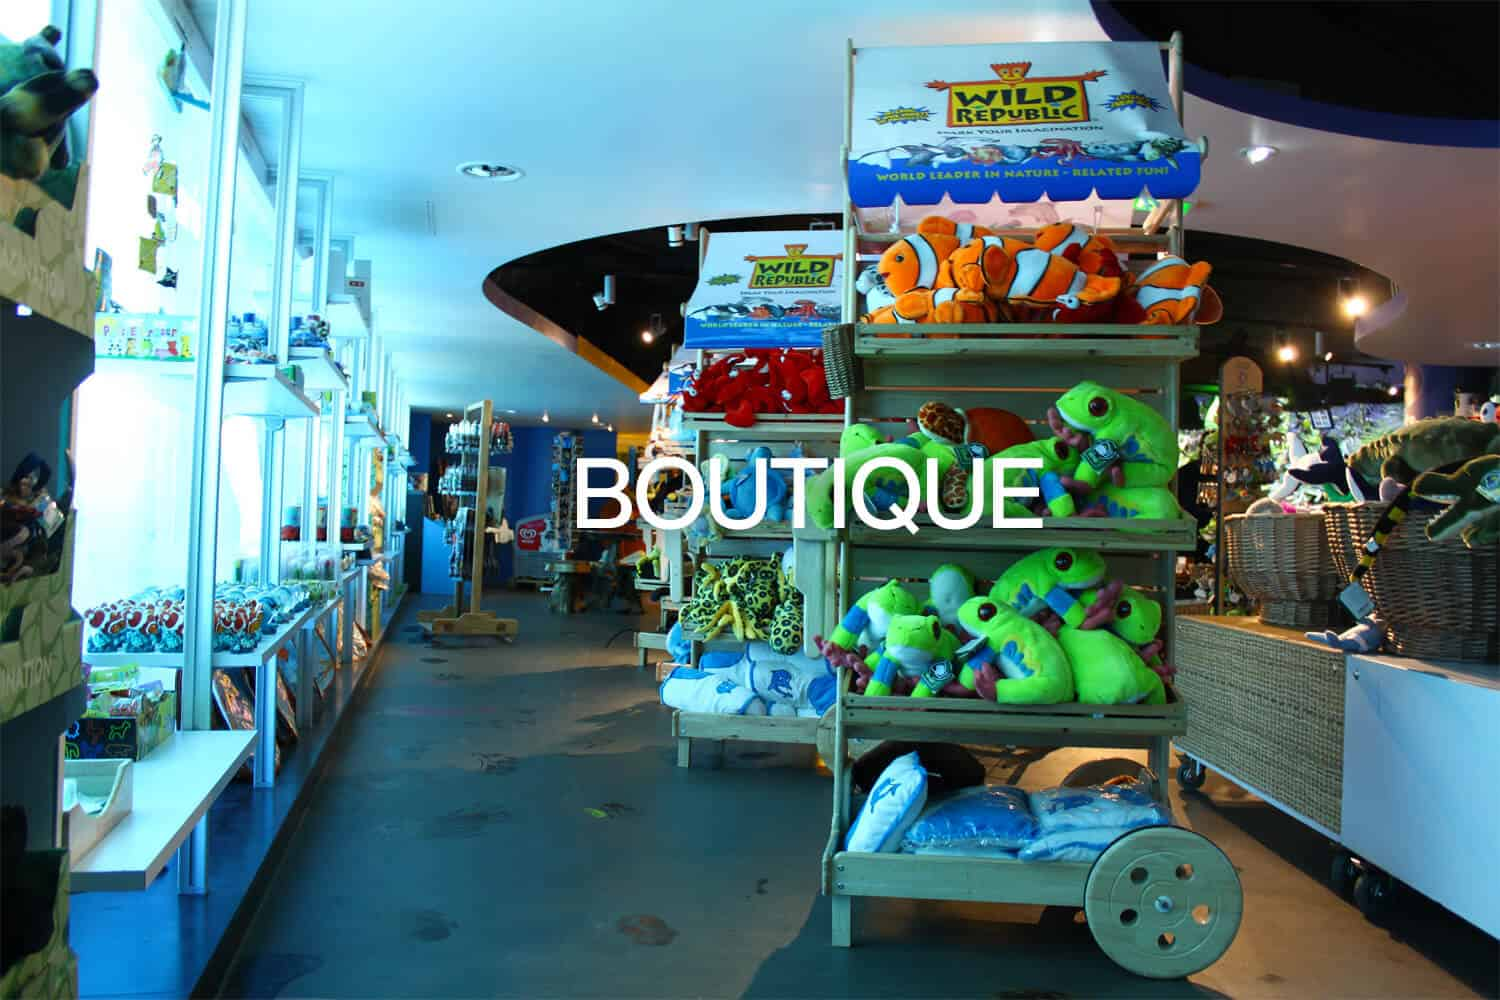 Boutique - Aquarium de Paris